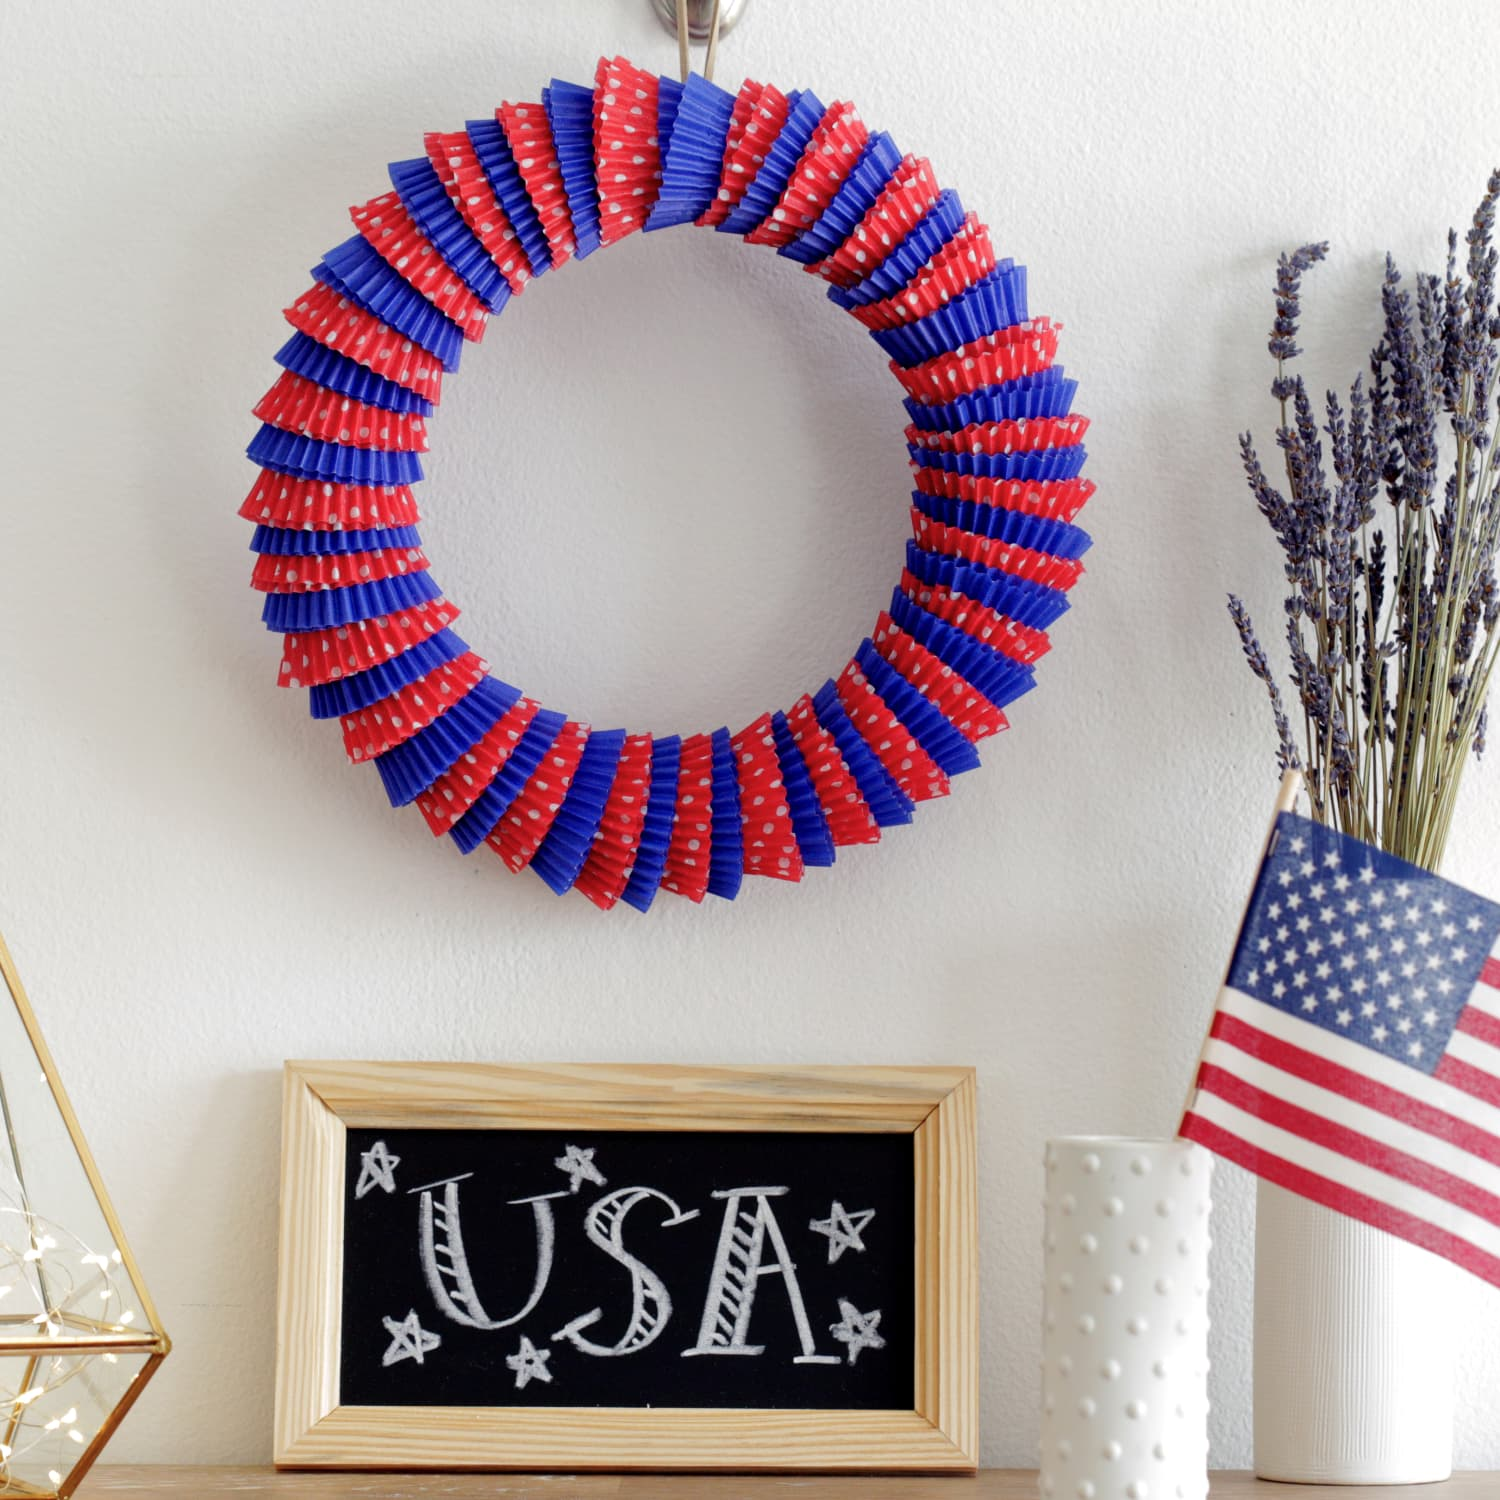 how to turn cupcake wrappers into a door wreath | kitchn